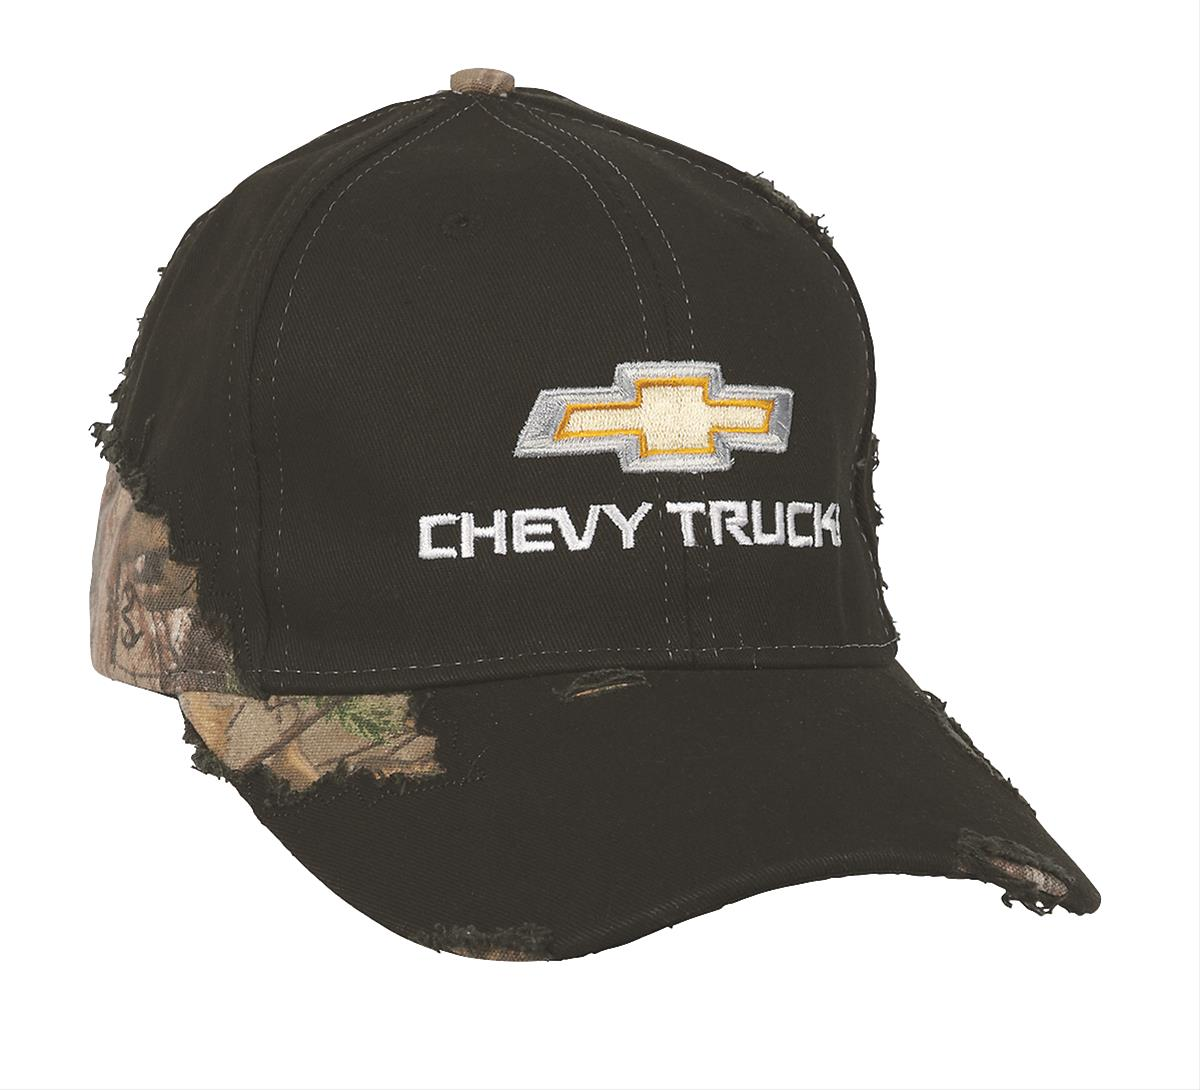 Chevy Trucks Cap Nc200 Free Shipping On Orders Over 99 At Summit Racing